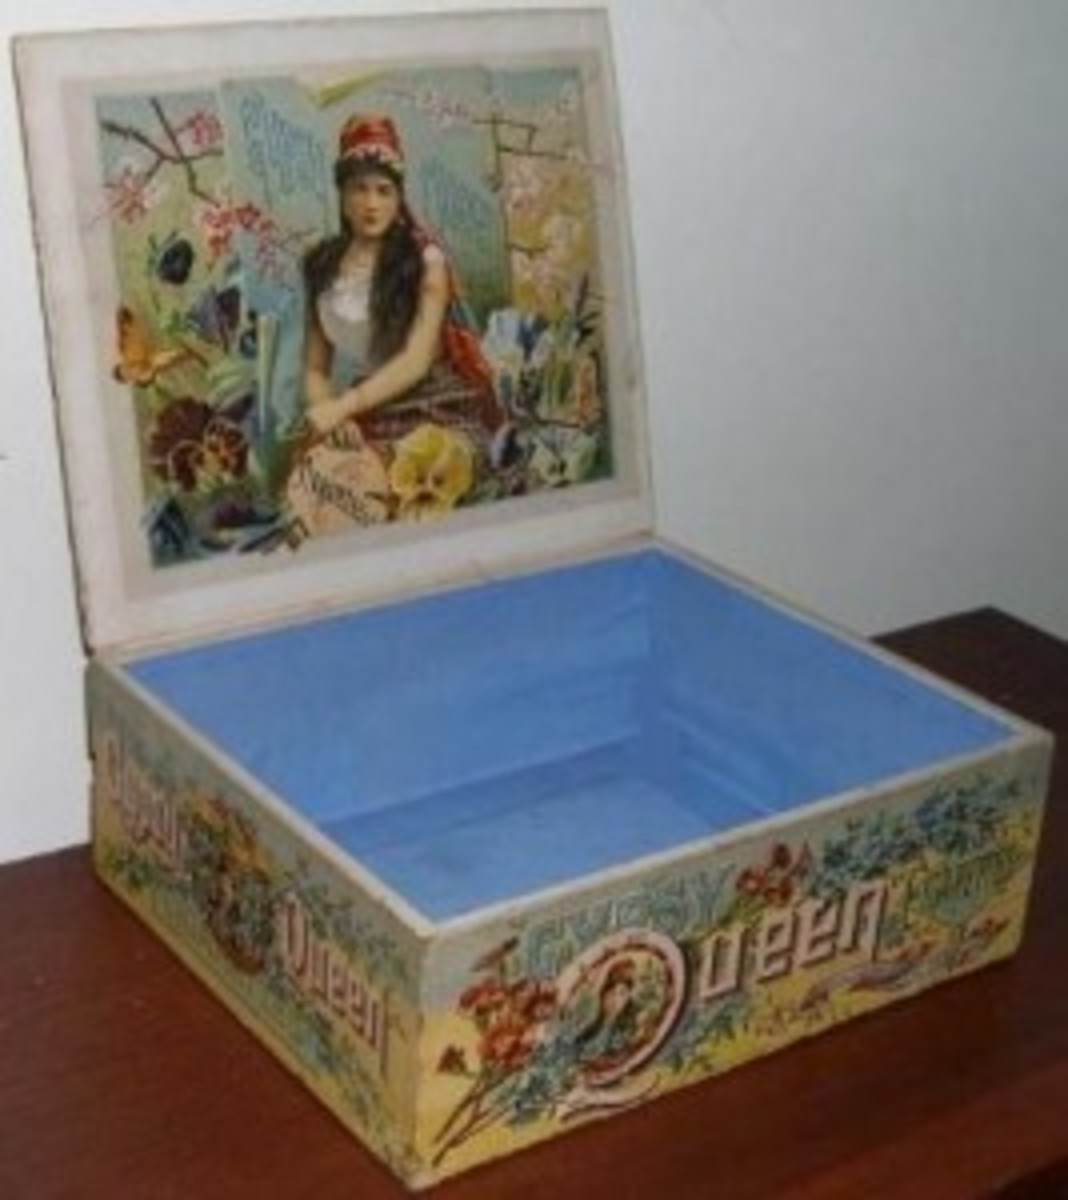 The redesigned Gypsy Queen display box for 1888 and an example of the N162 card the boxes held (below).